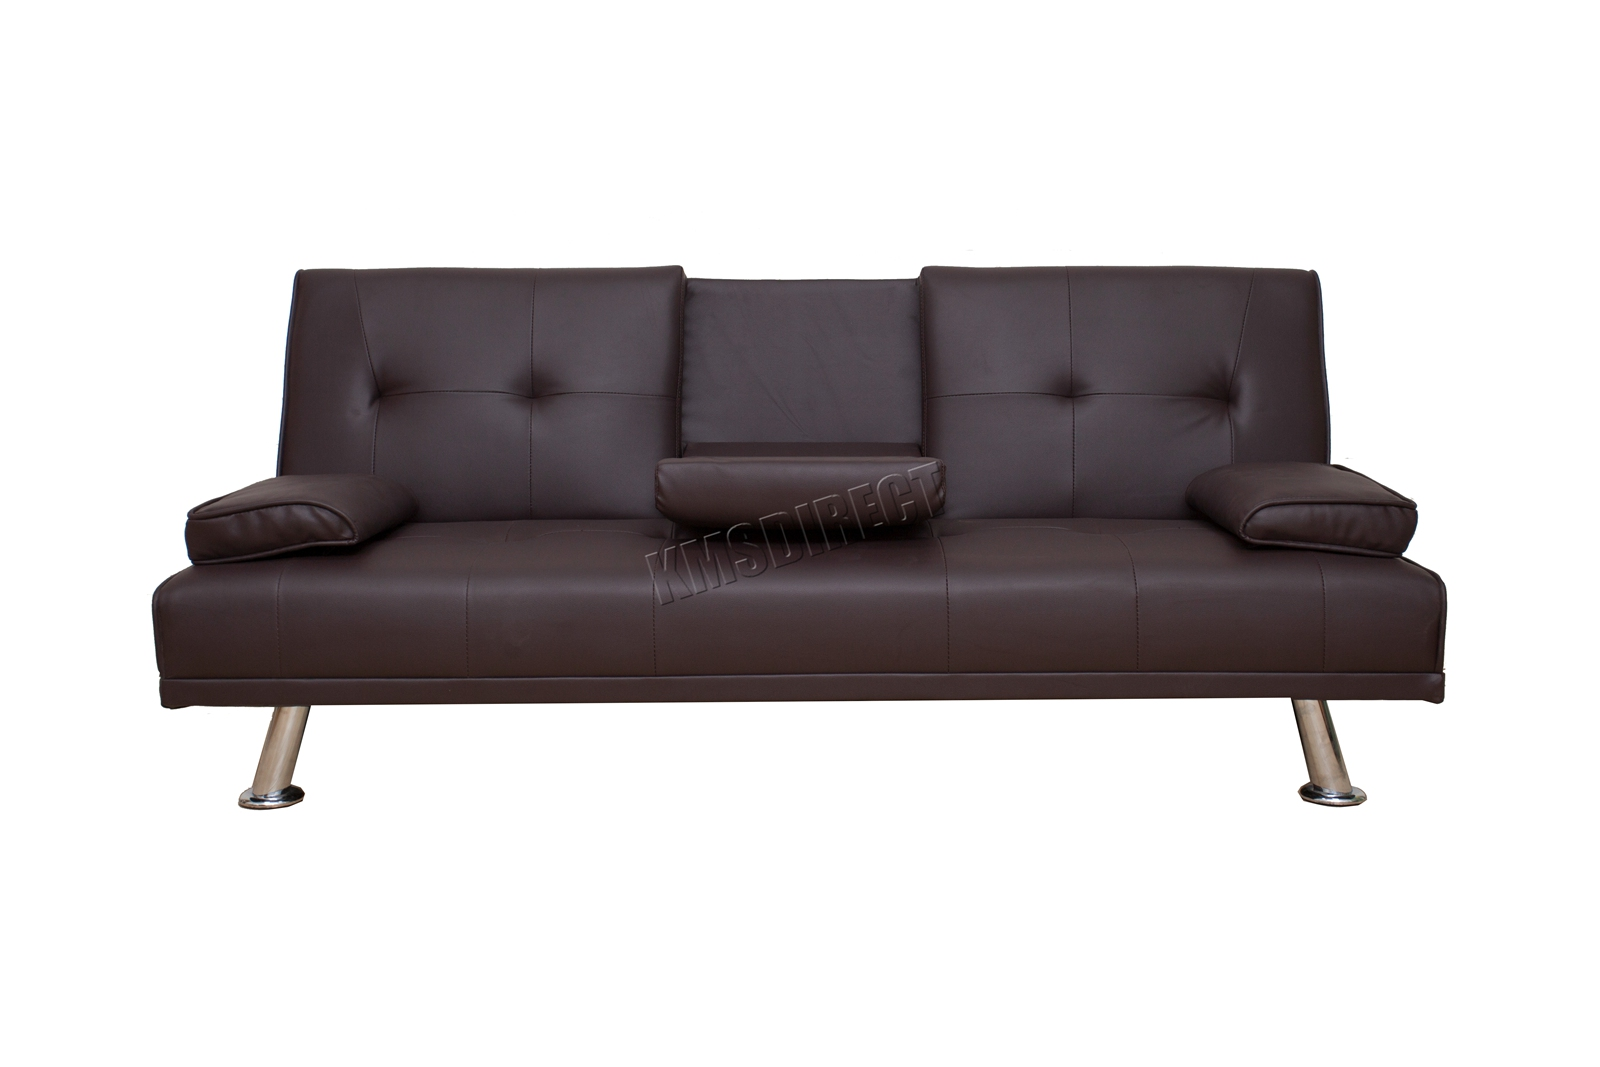 WestWood-Faux-Leather-Manhattan-Sofa-Bed-recliner-3-Seater-Modern-Luxury-Design thumbnail 25